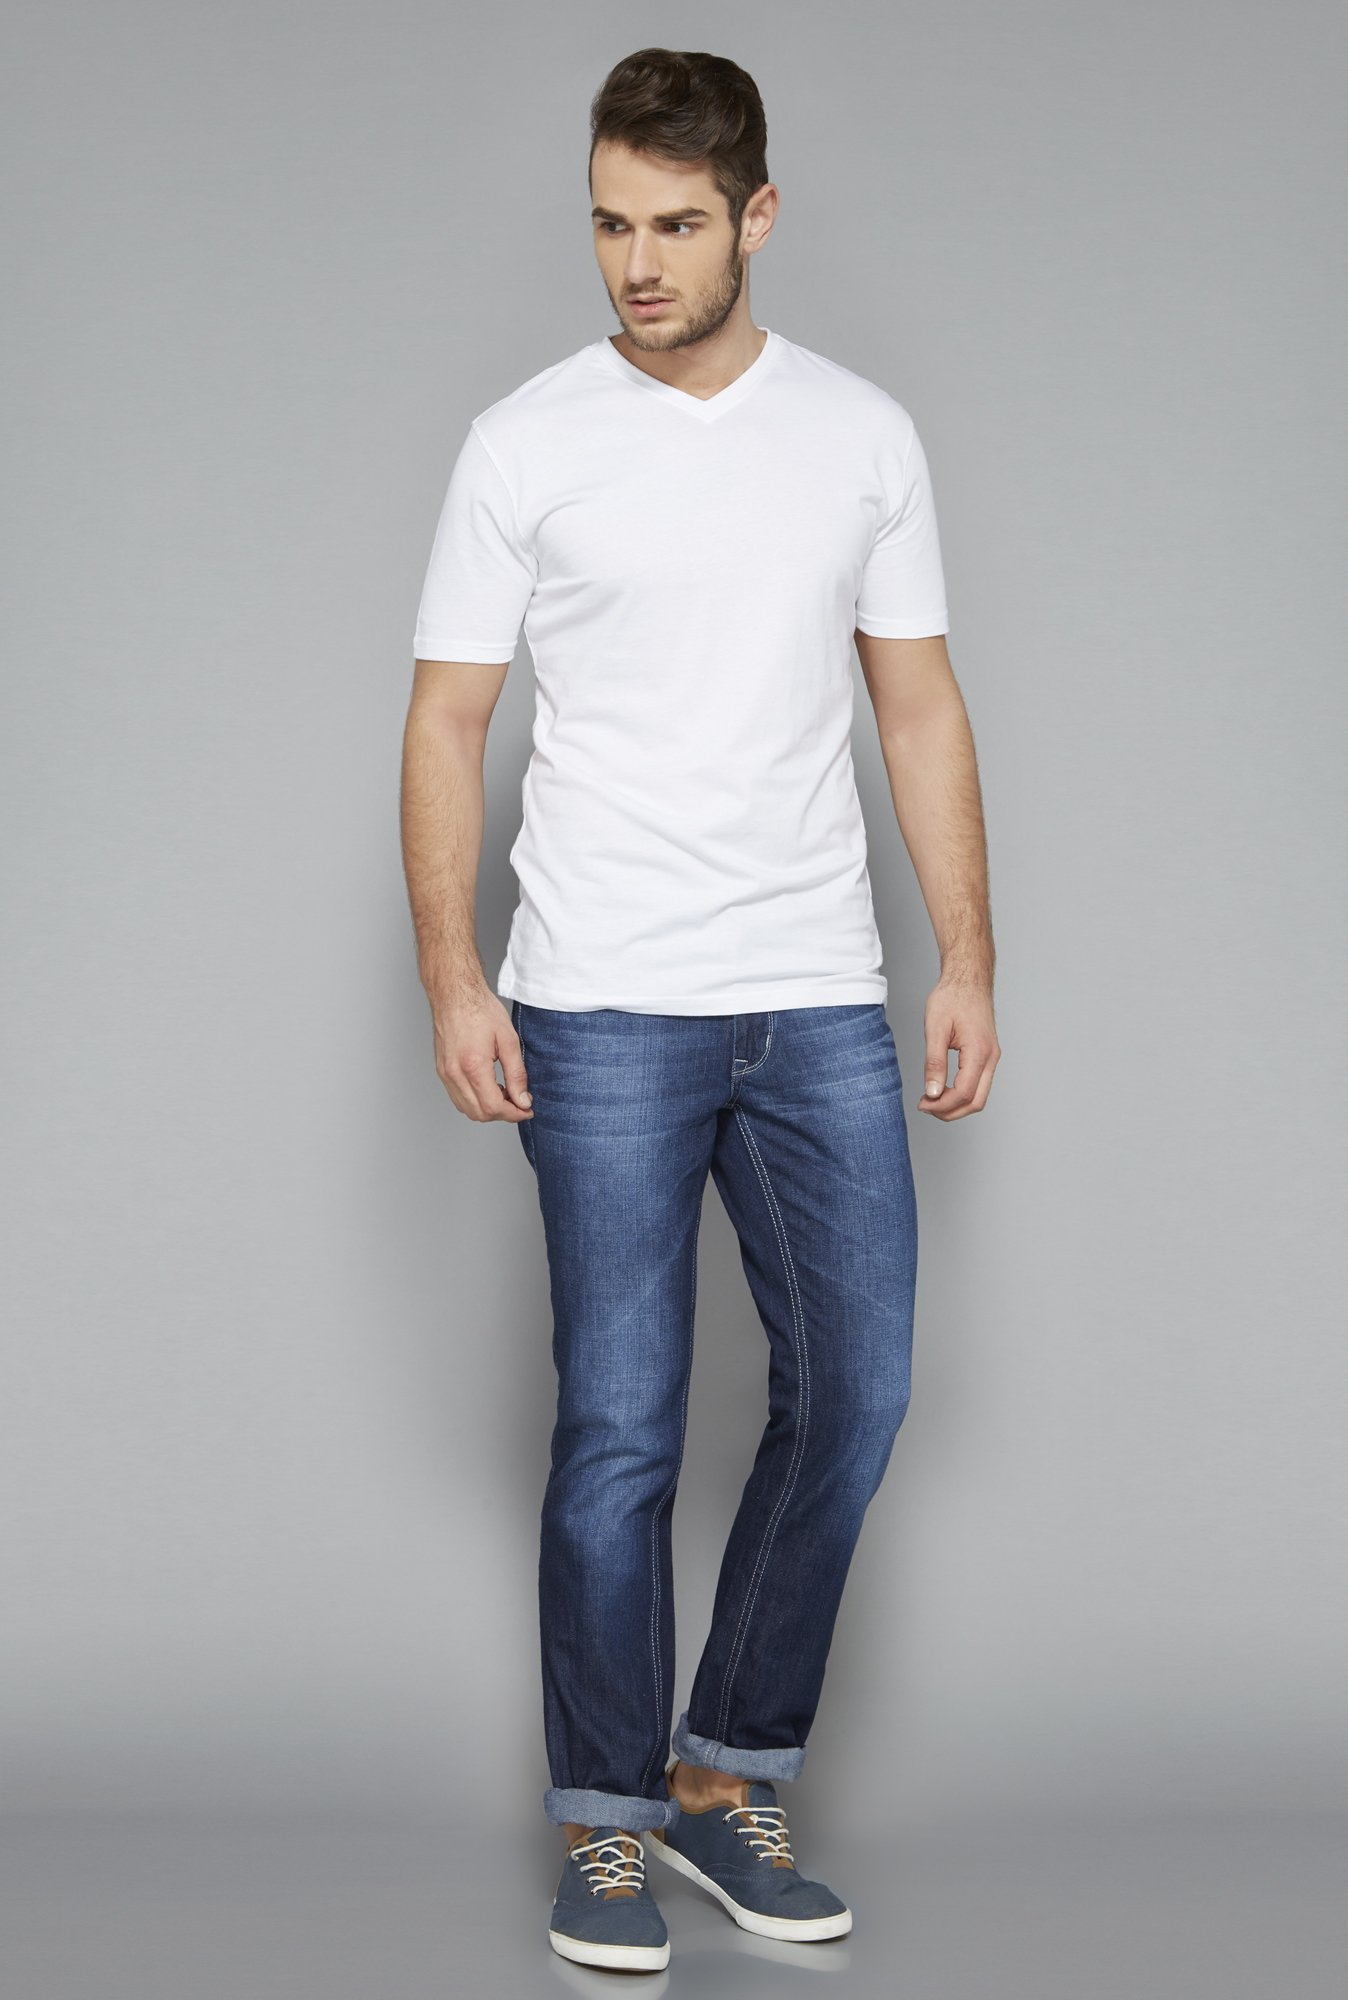 Westsport White V Neck T Shirt